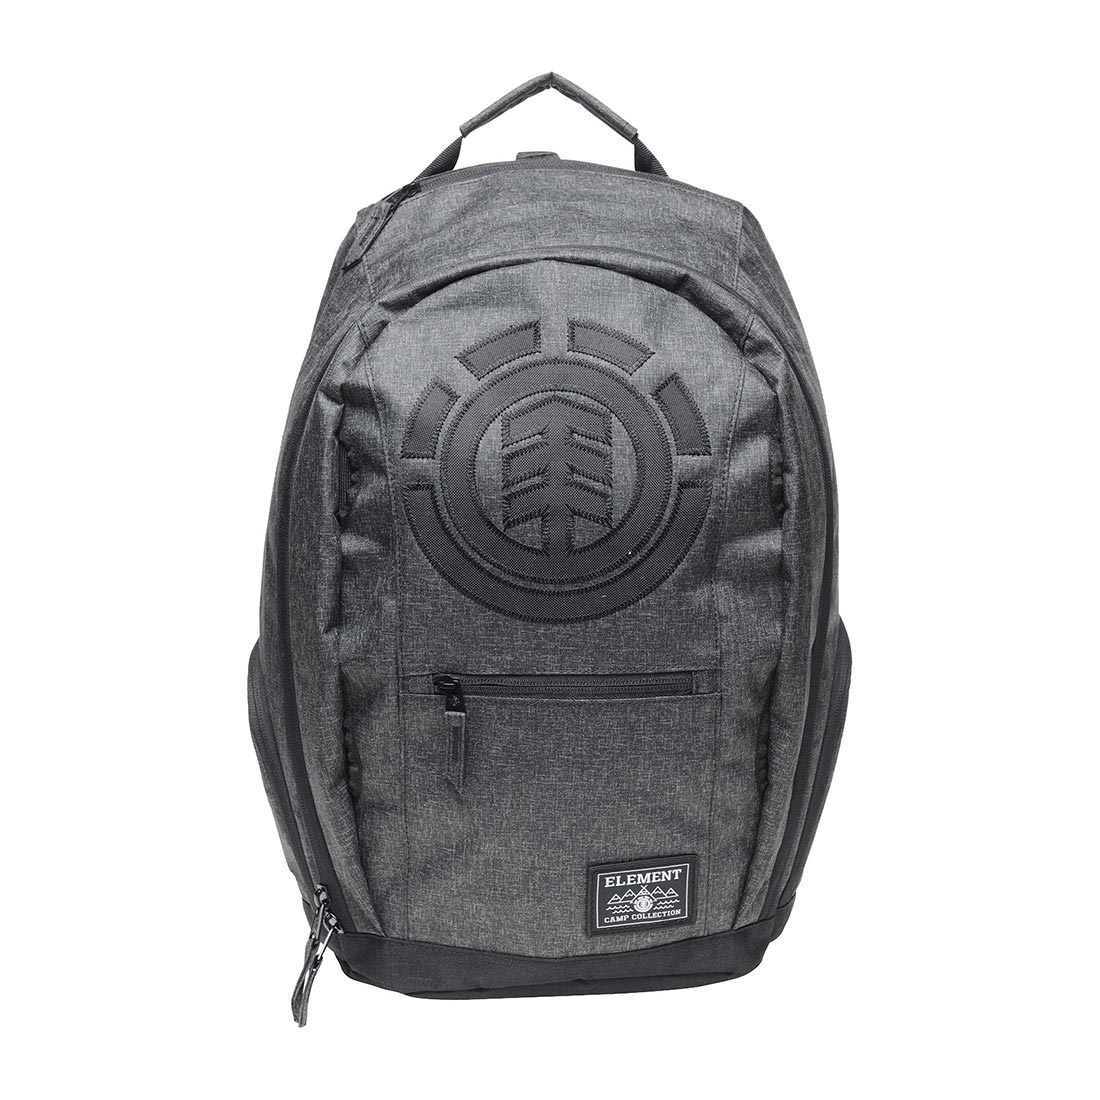 Element Mohave 30L Backpack (AW18) - Black Grid Heather